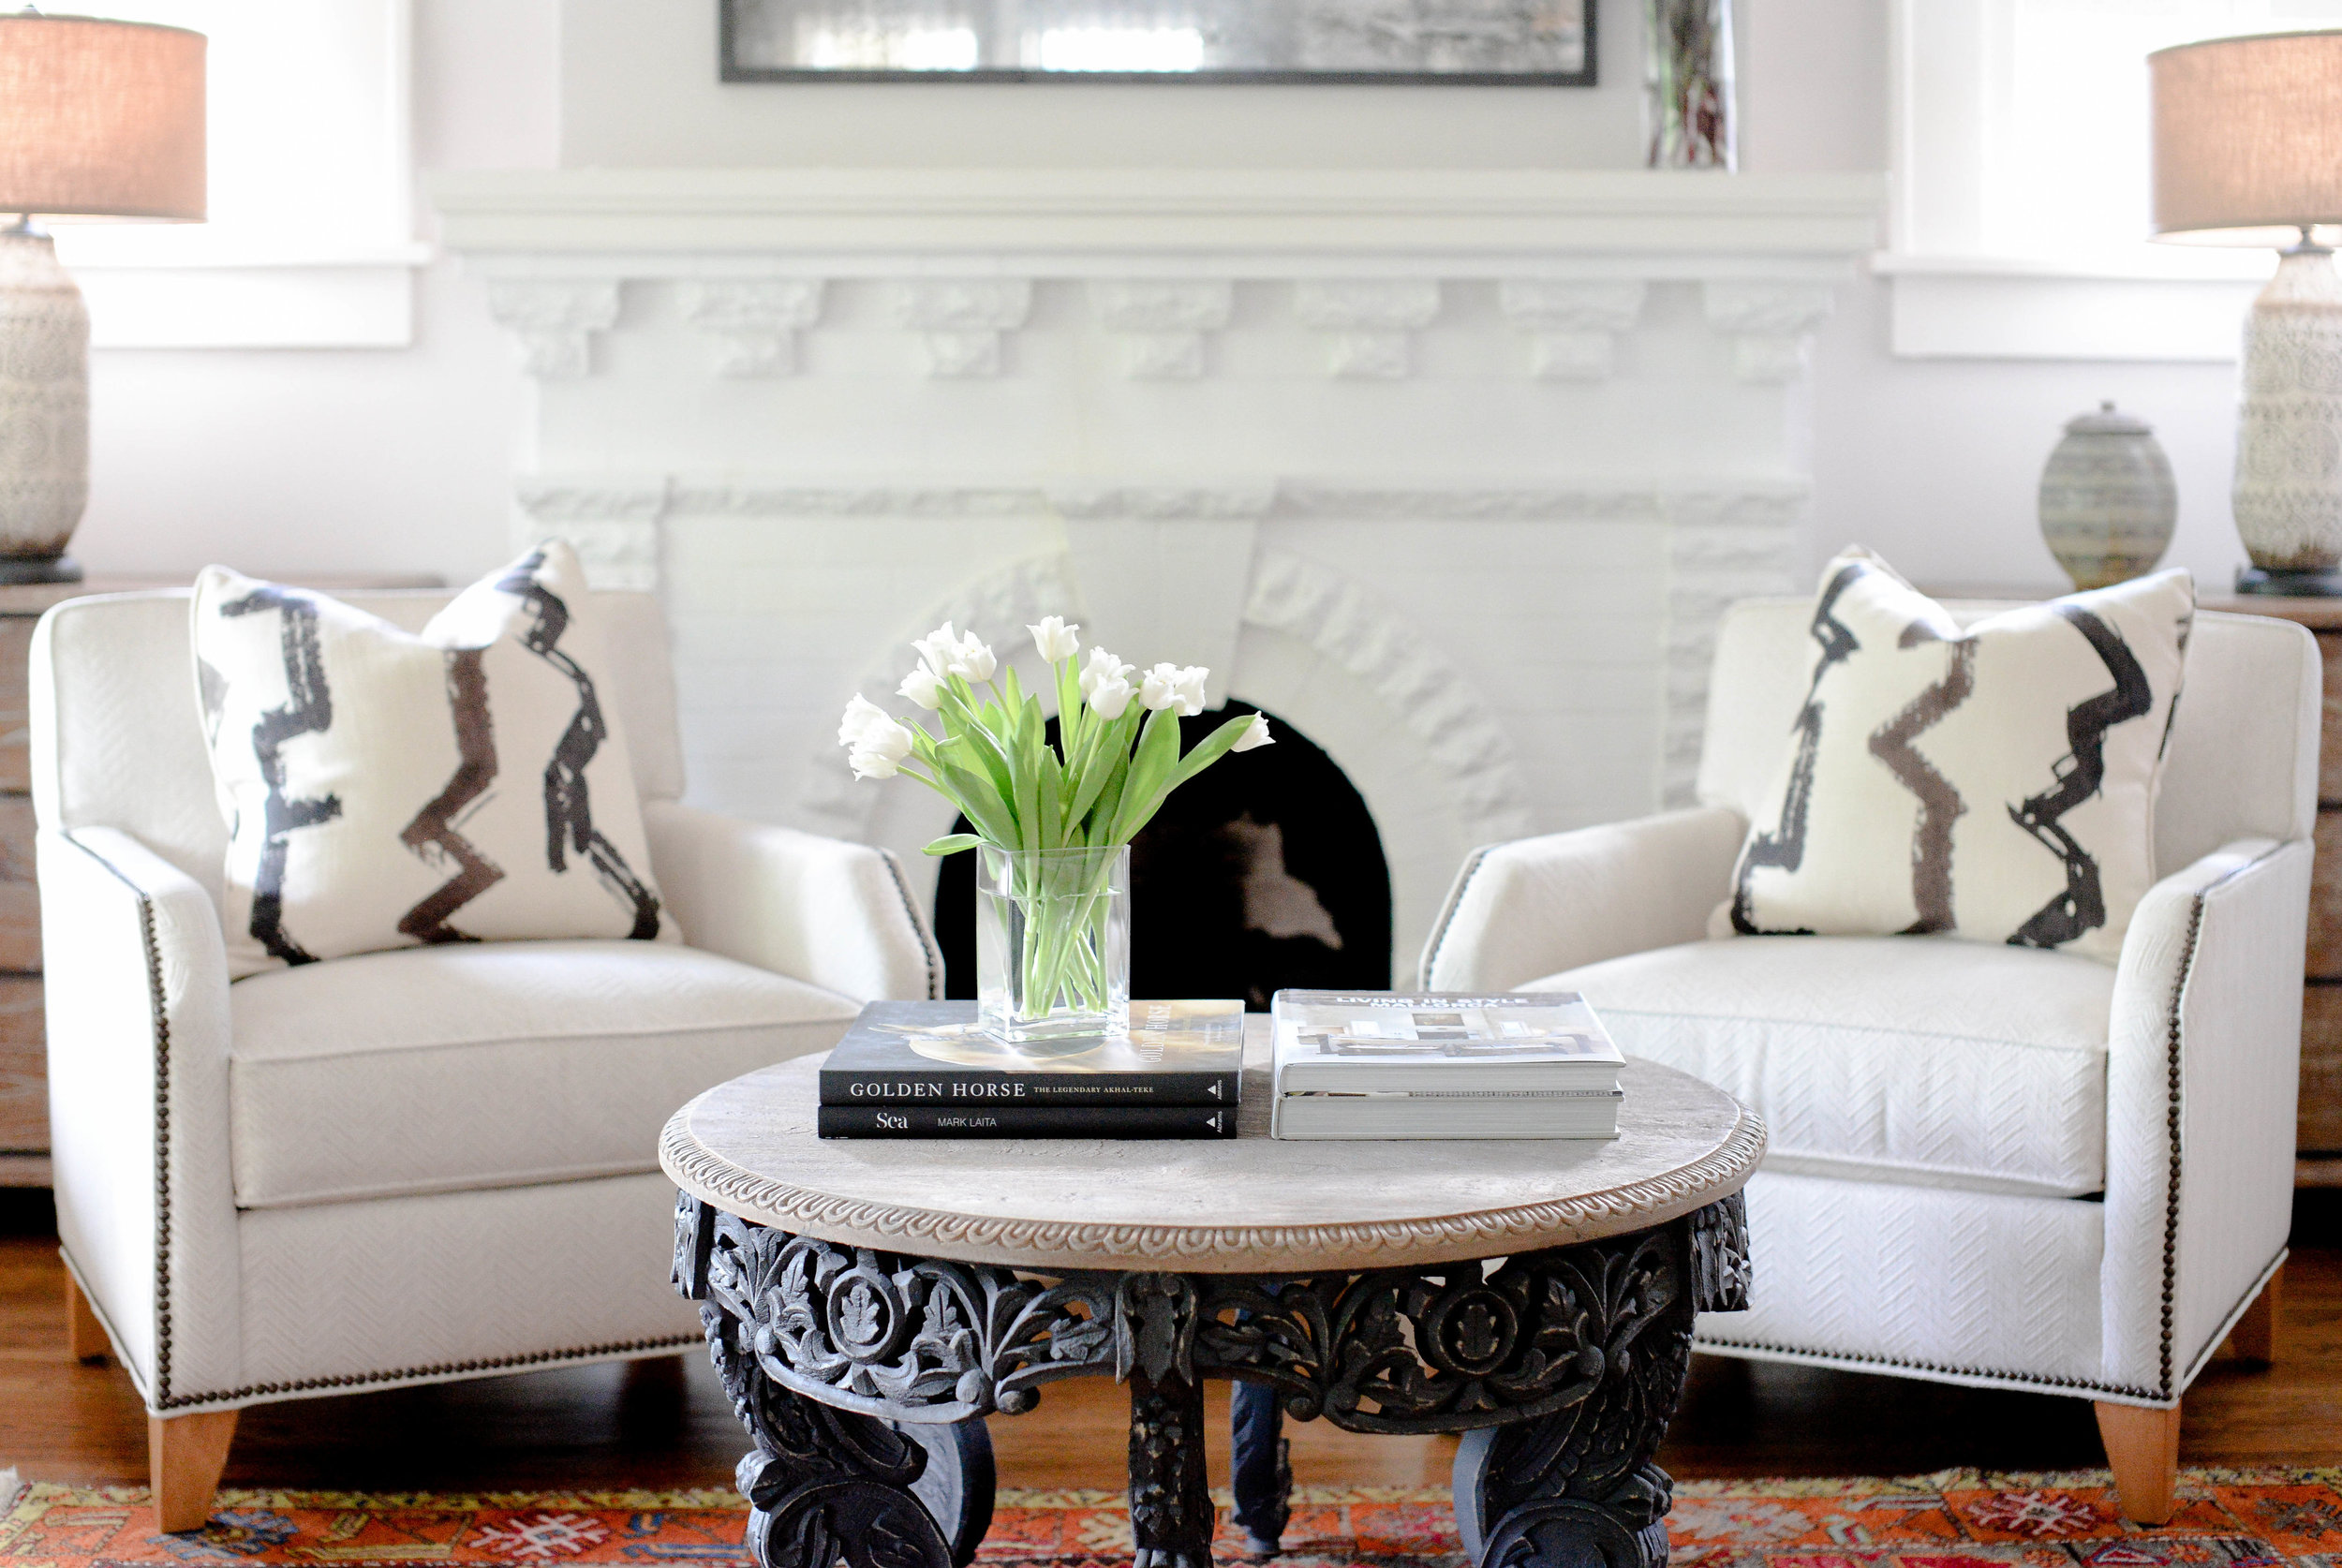 Rue Magazine - A Young & Sophisticated Home in Tulsa, Oklahoma